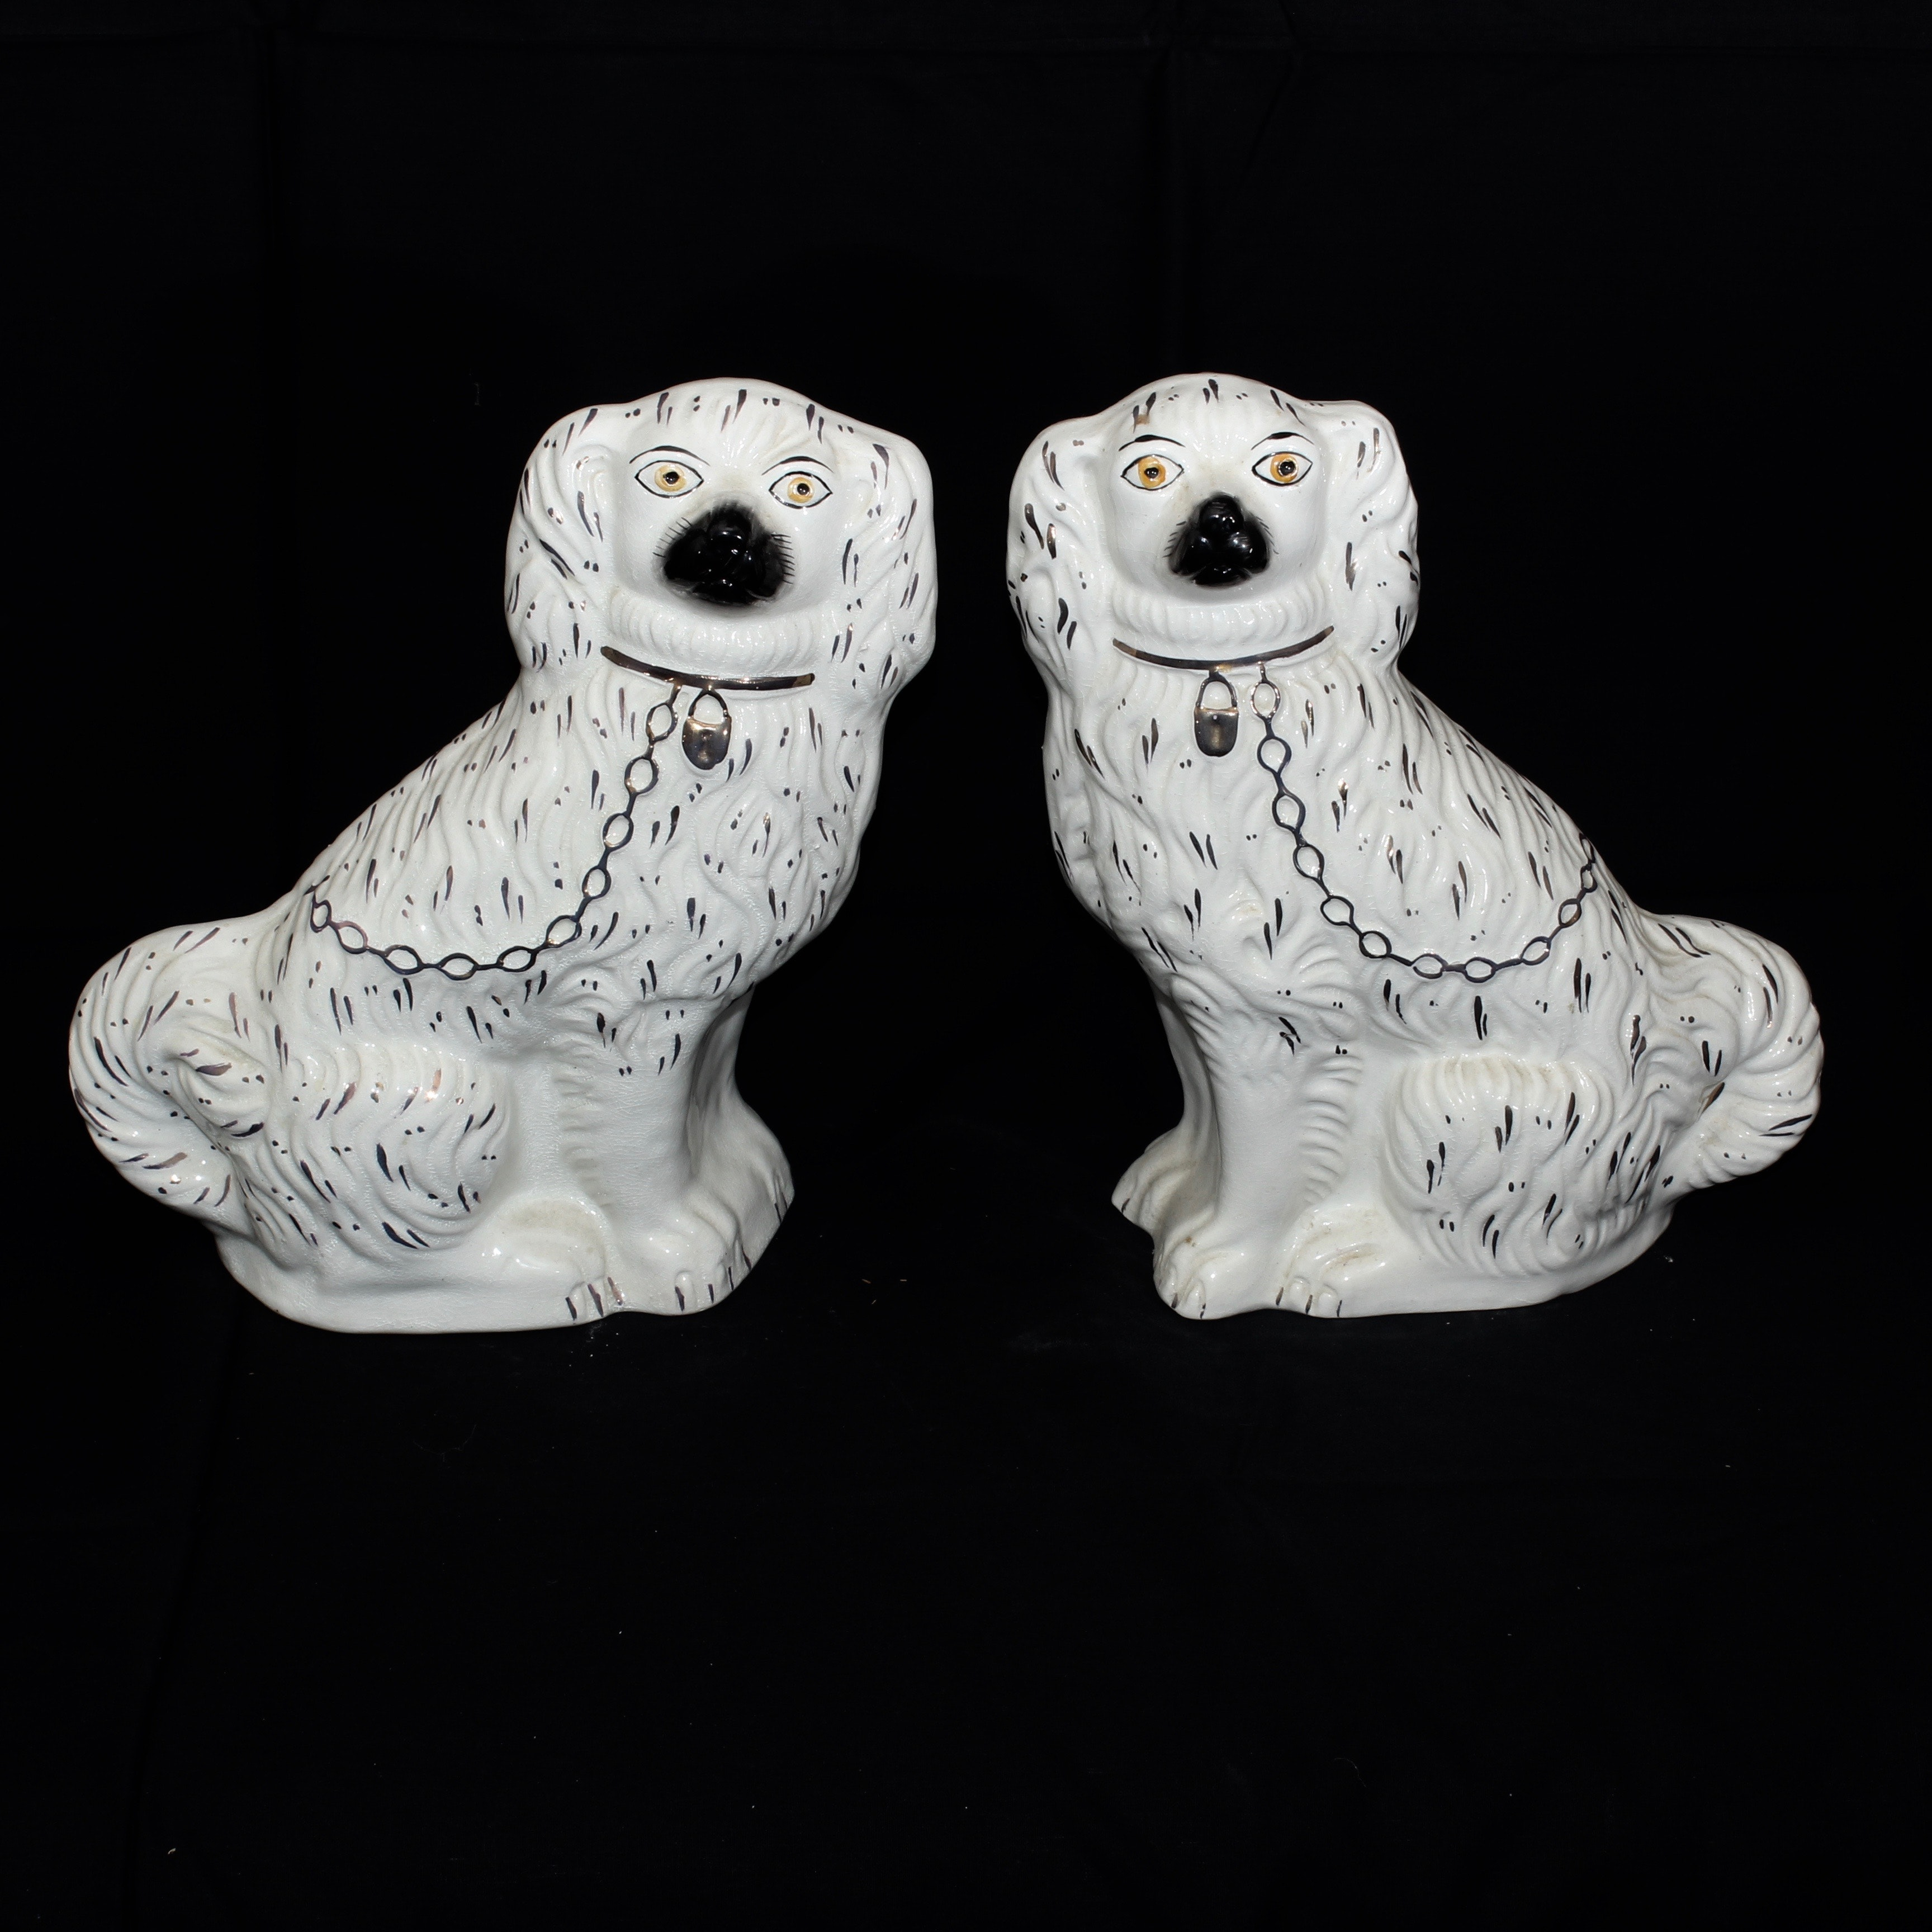 Vintage Staffordshire Style Porcelain Dogs